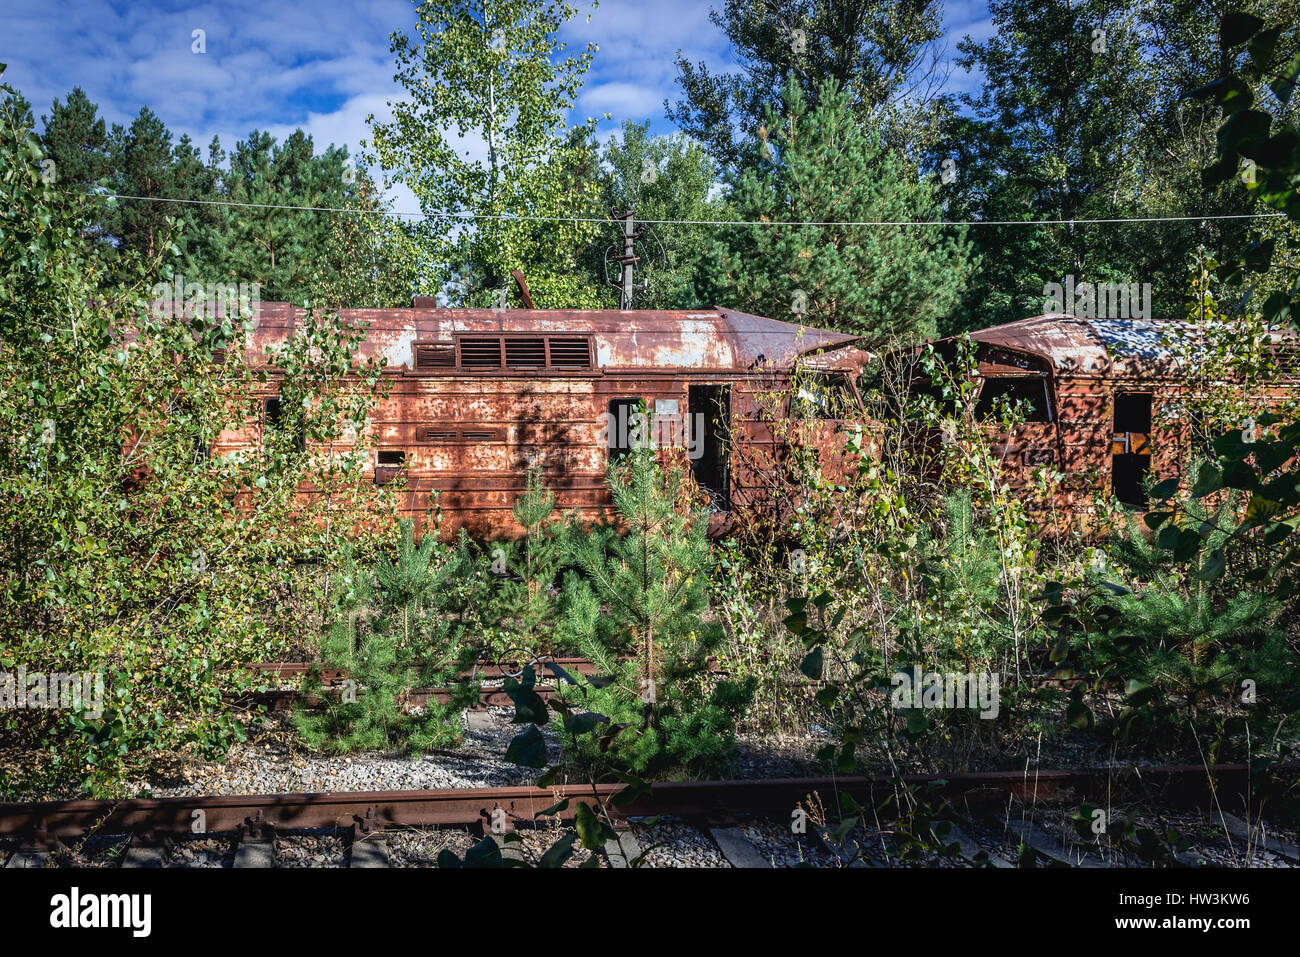 Rusty wagons in abandoned Yaniv town railway station, Chernobyl Nuclear Power Plant Zone of Alienation around the - Stock Image